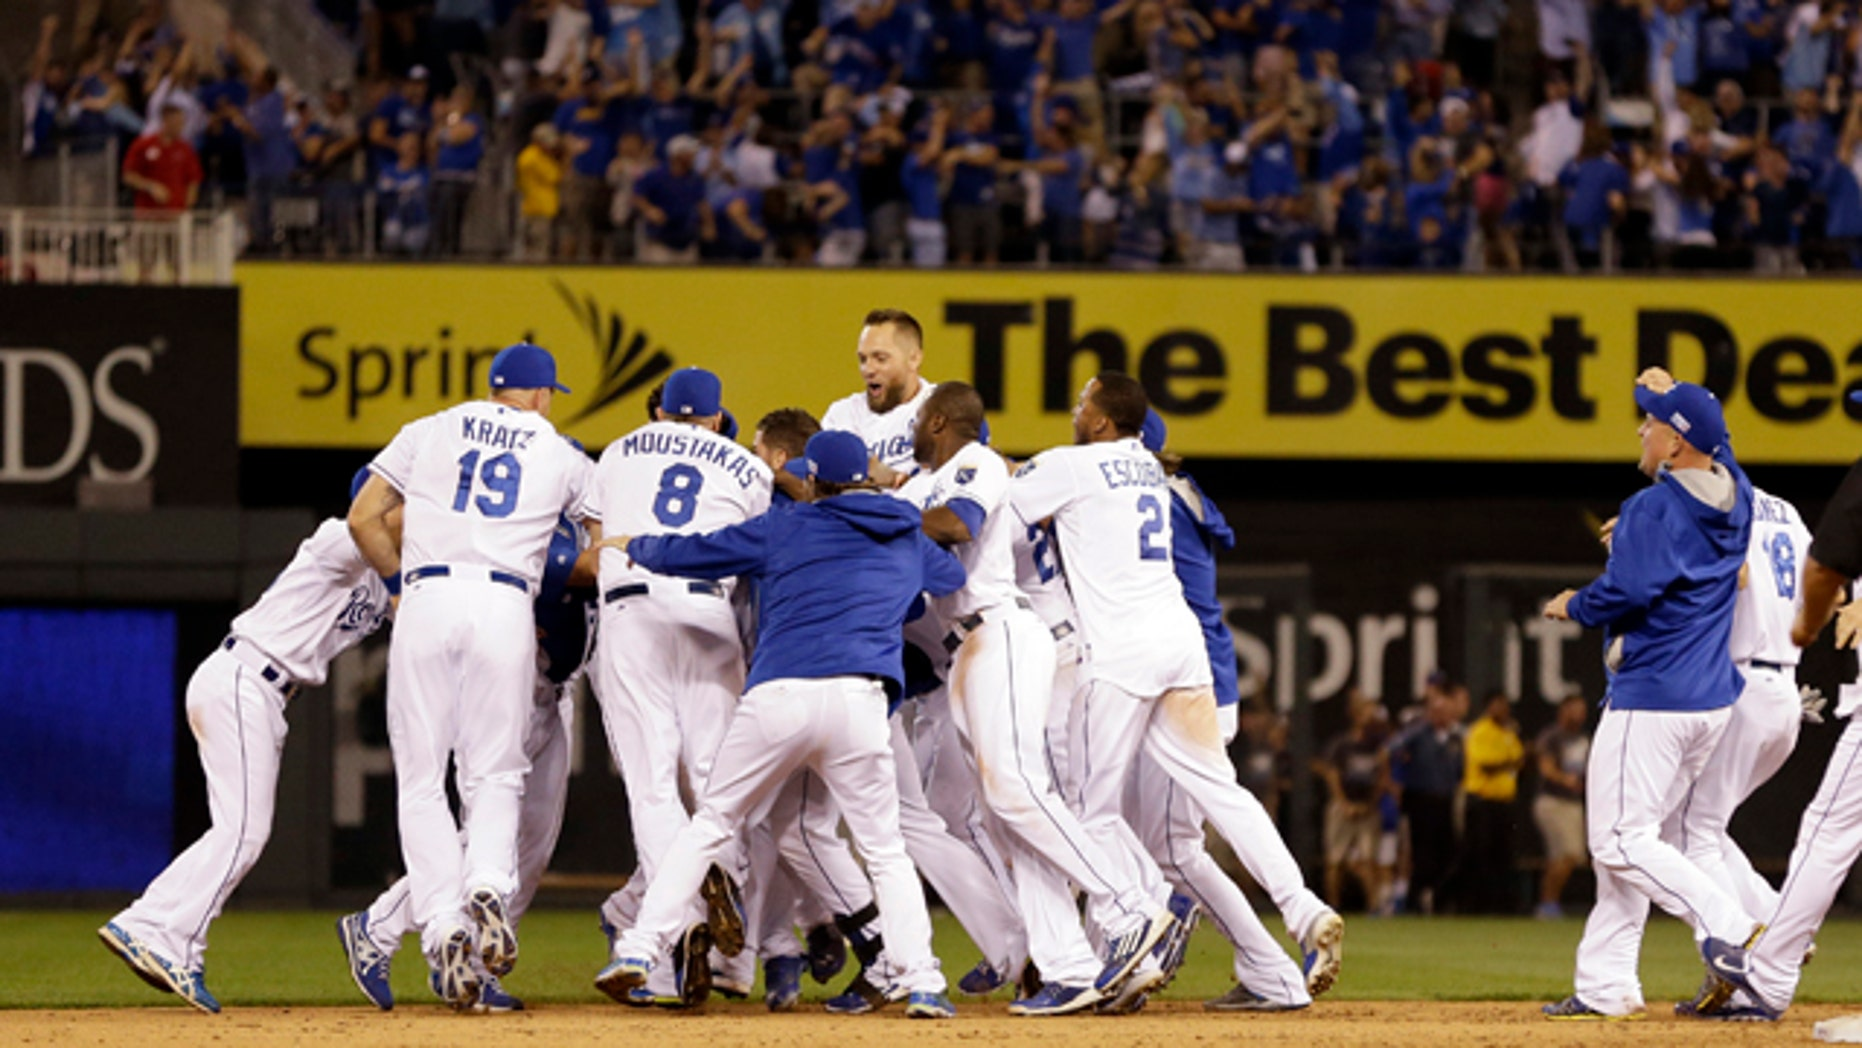 September 30, 2014: Kansas City Royals mob teammate Salvador Perez after he hit a walk-off single in the 12th inning to defeat the Oakland Athletics 9-8 in the AL wild-card playoff baseball game in Kansas City, Mo. (AP Photo/Jeff Roberson)